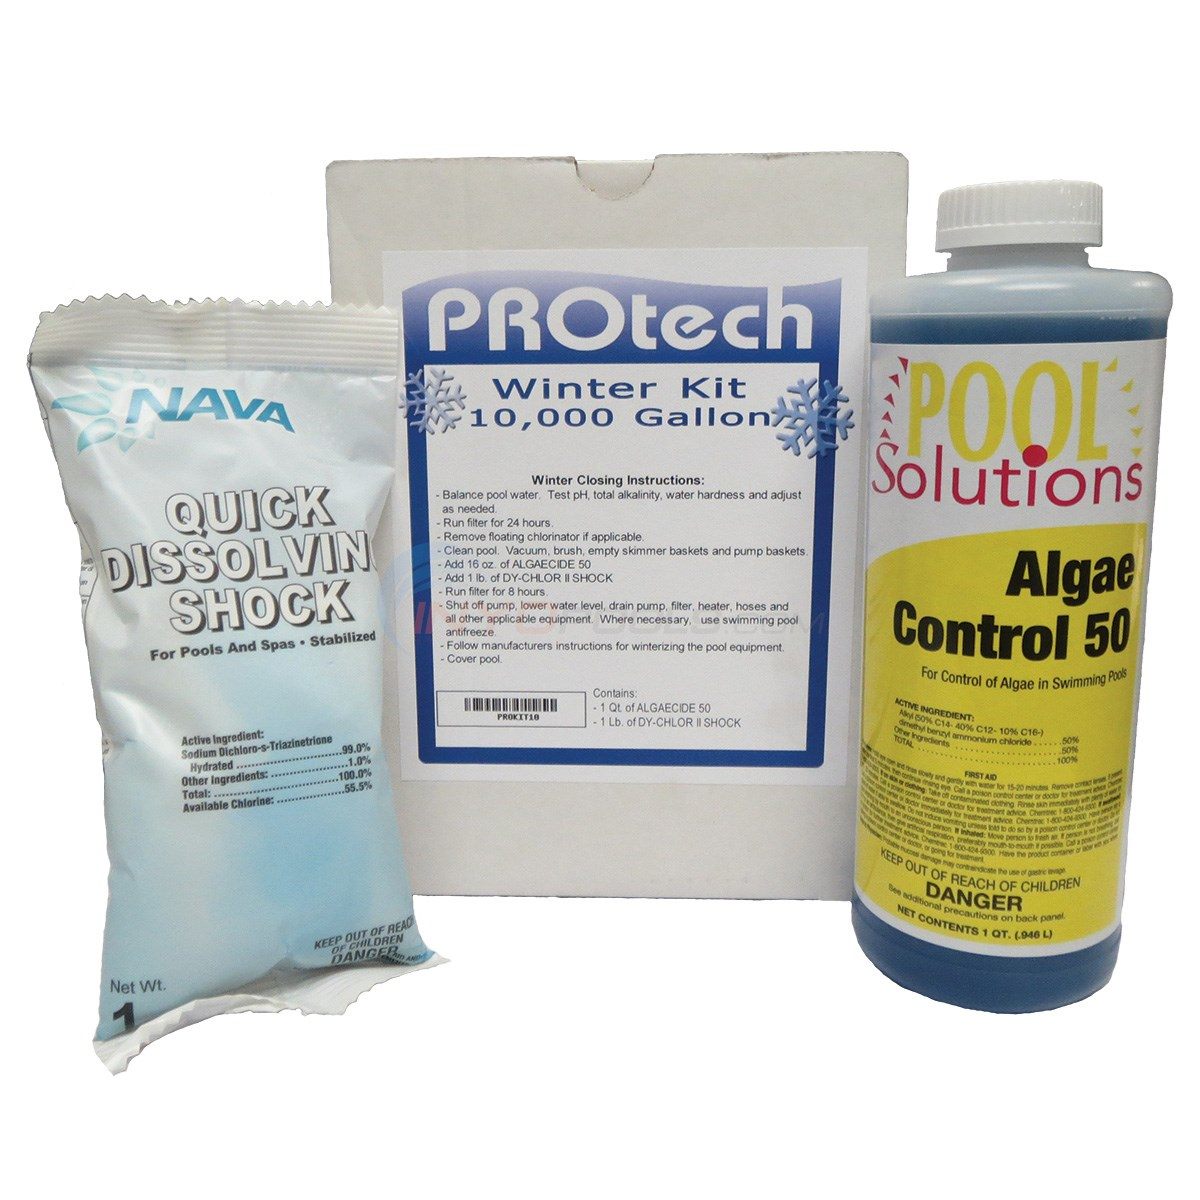 10,000 Gal. Winterizing Kit with Burst